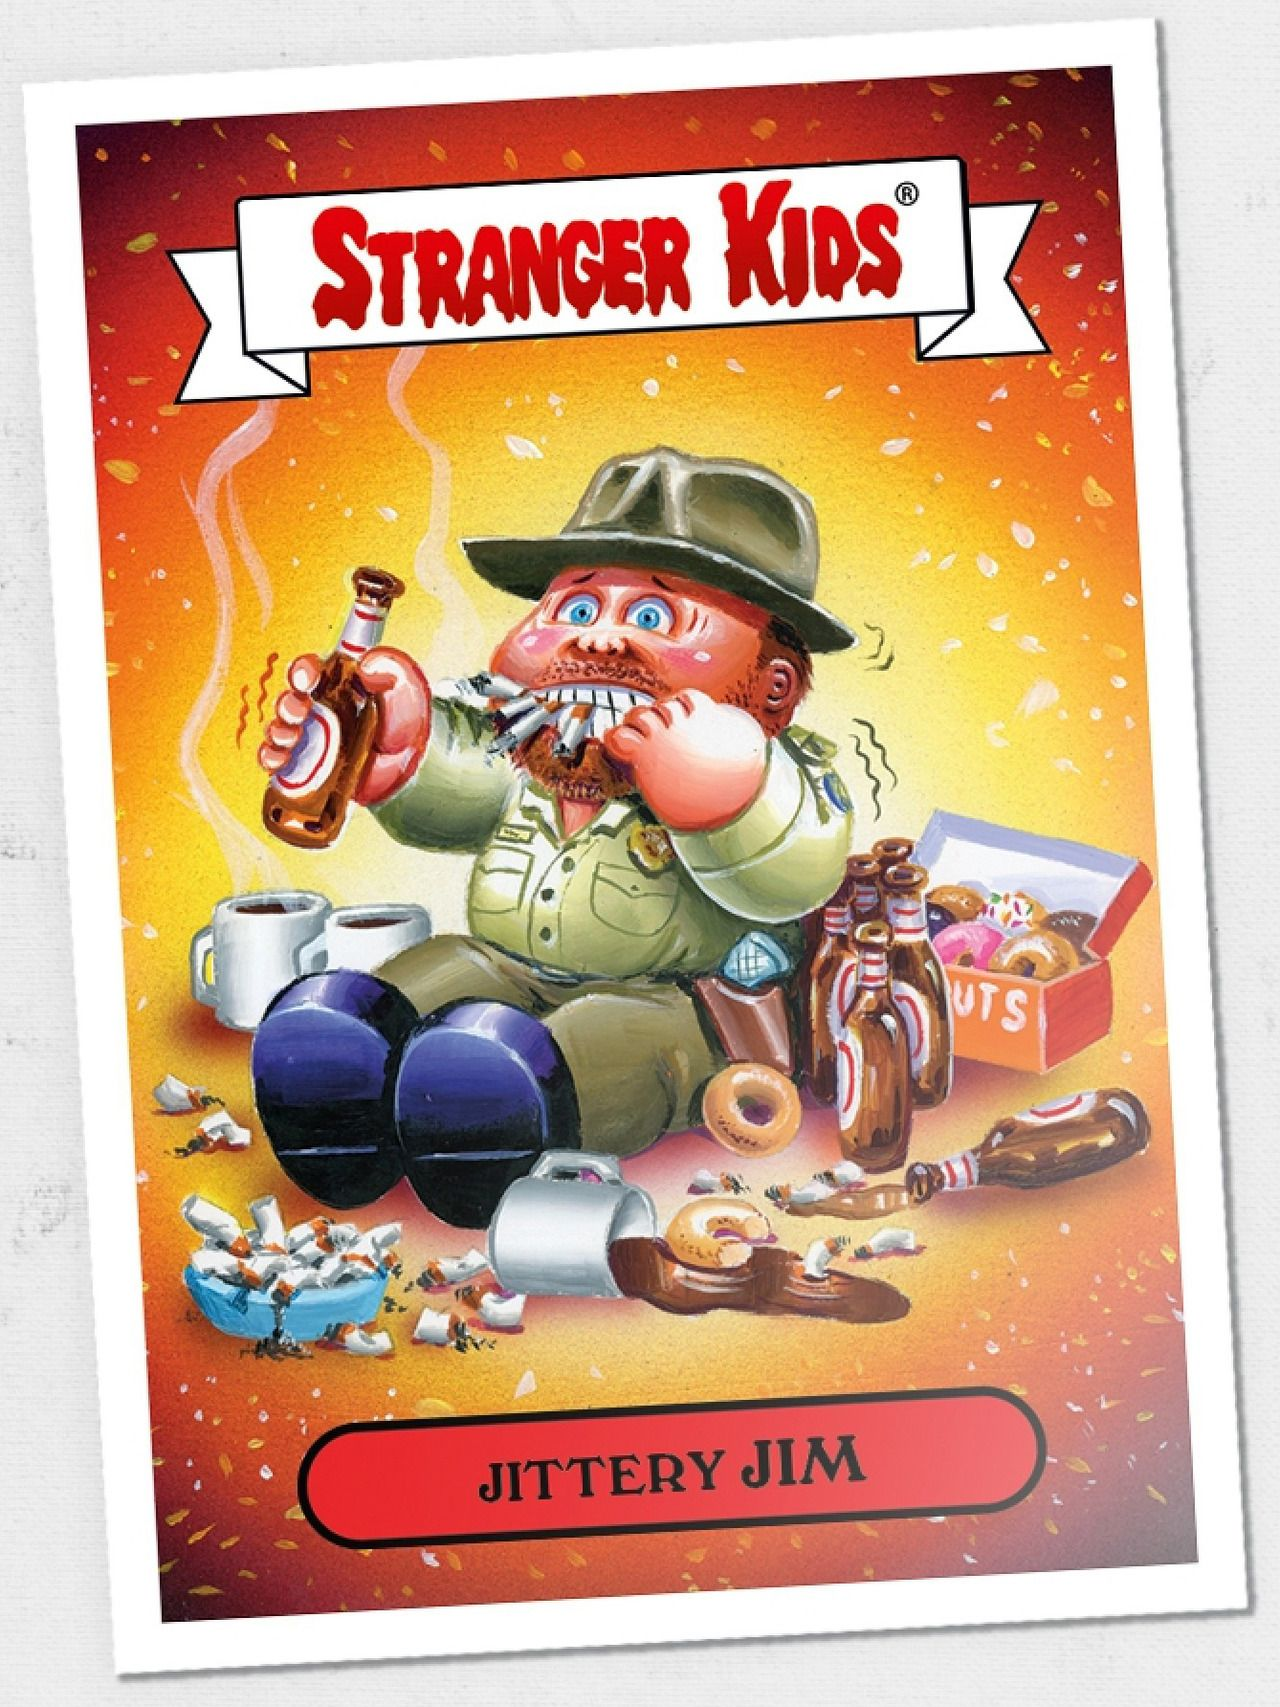 In Honor Of Stranger Things Day Garbage Pail Kids Has Created Stranger Kids A Series Of Trading Card Garbage Pail Kids Cards Garbage Pail Kids Kids Stickers